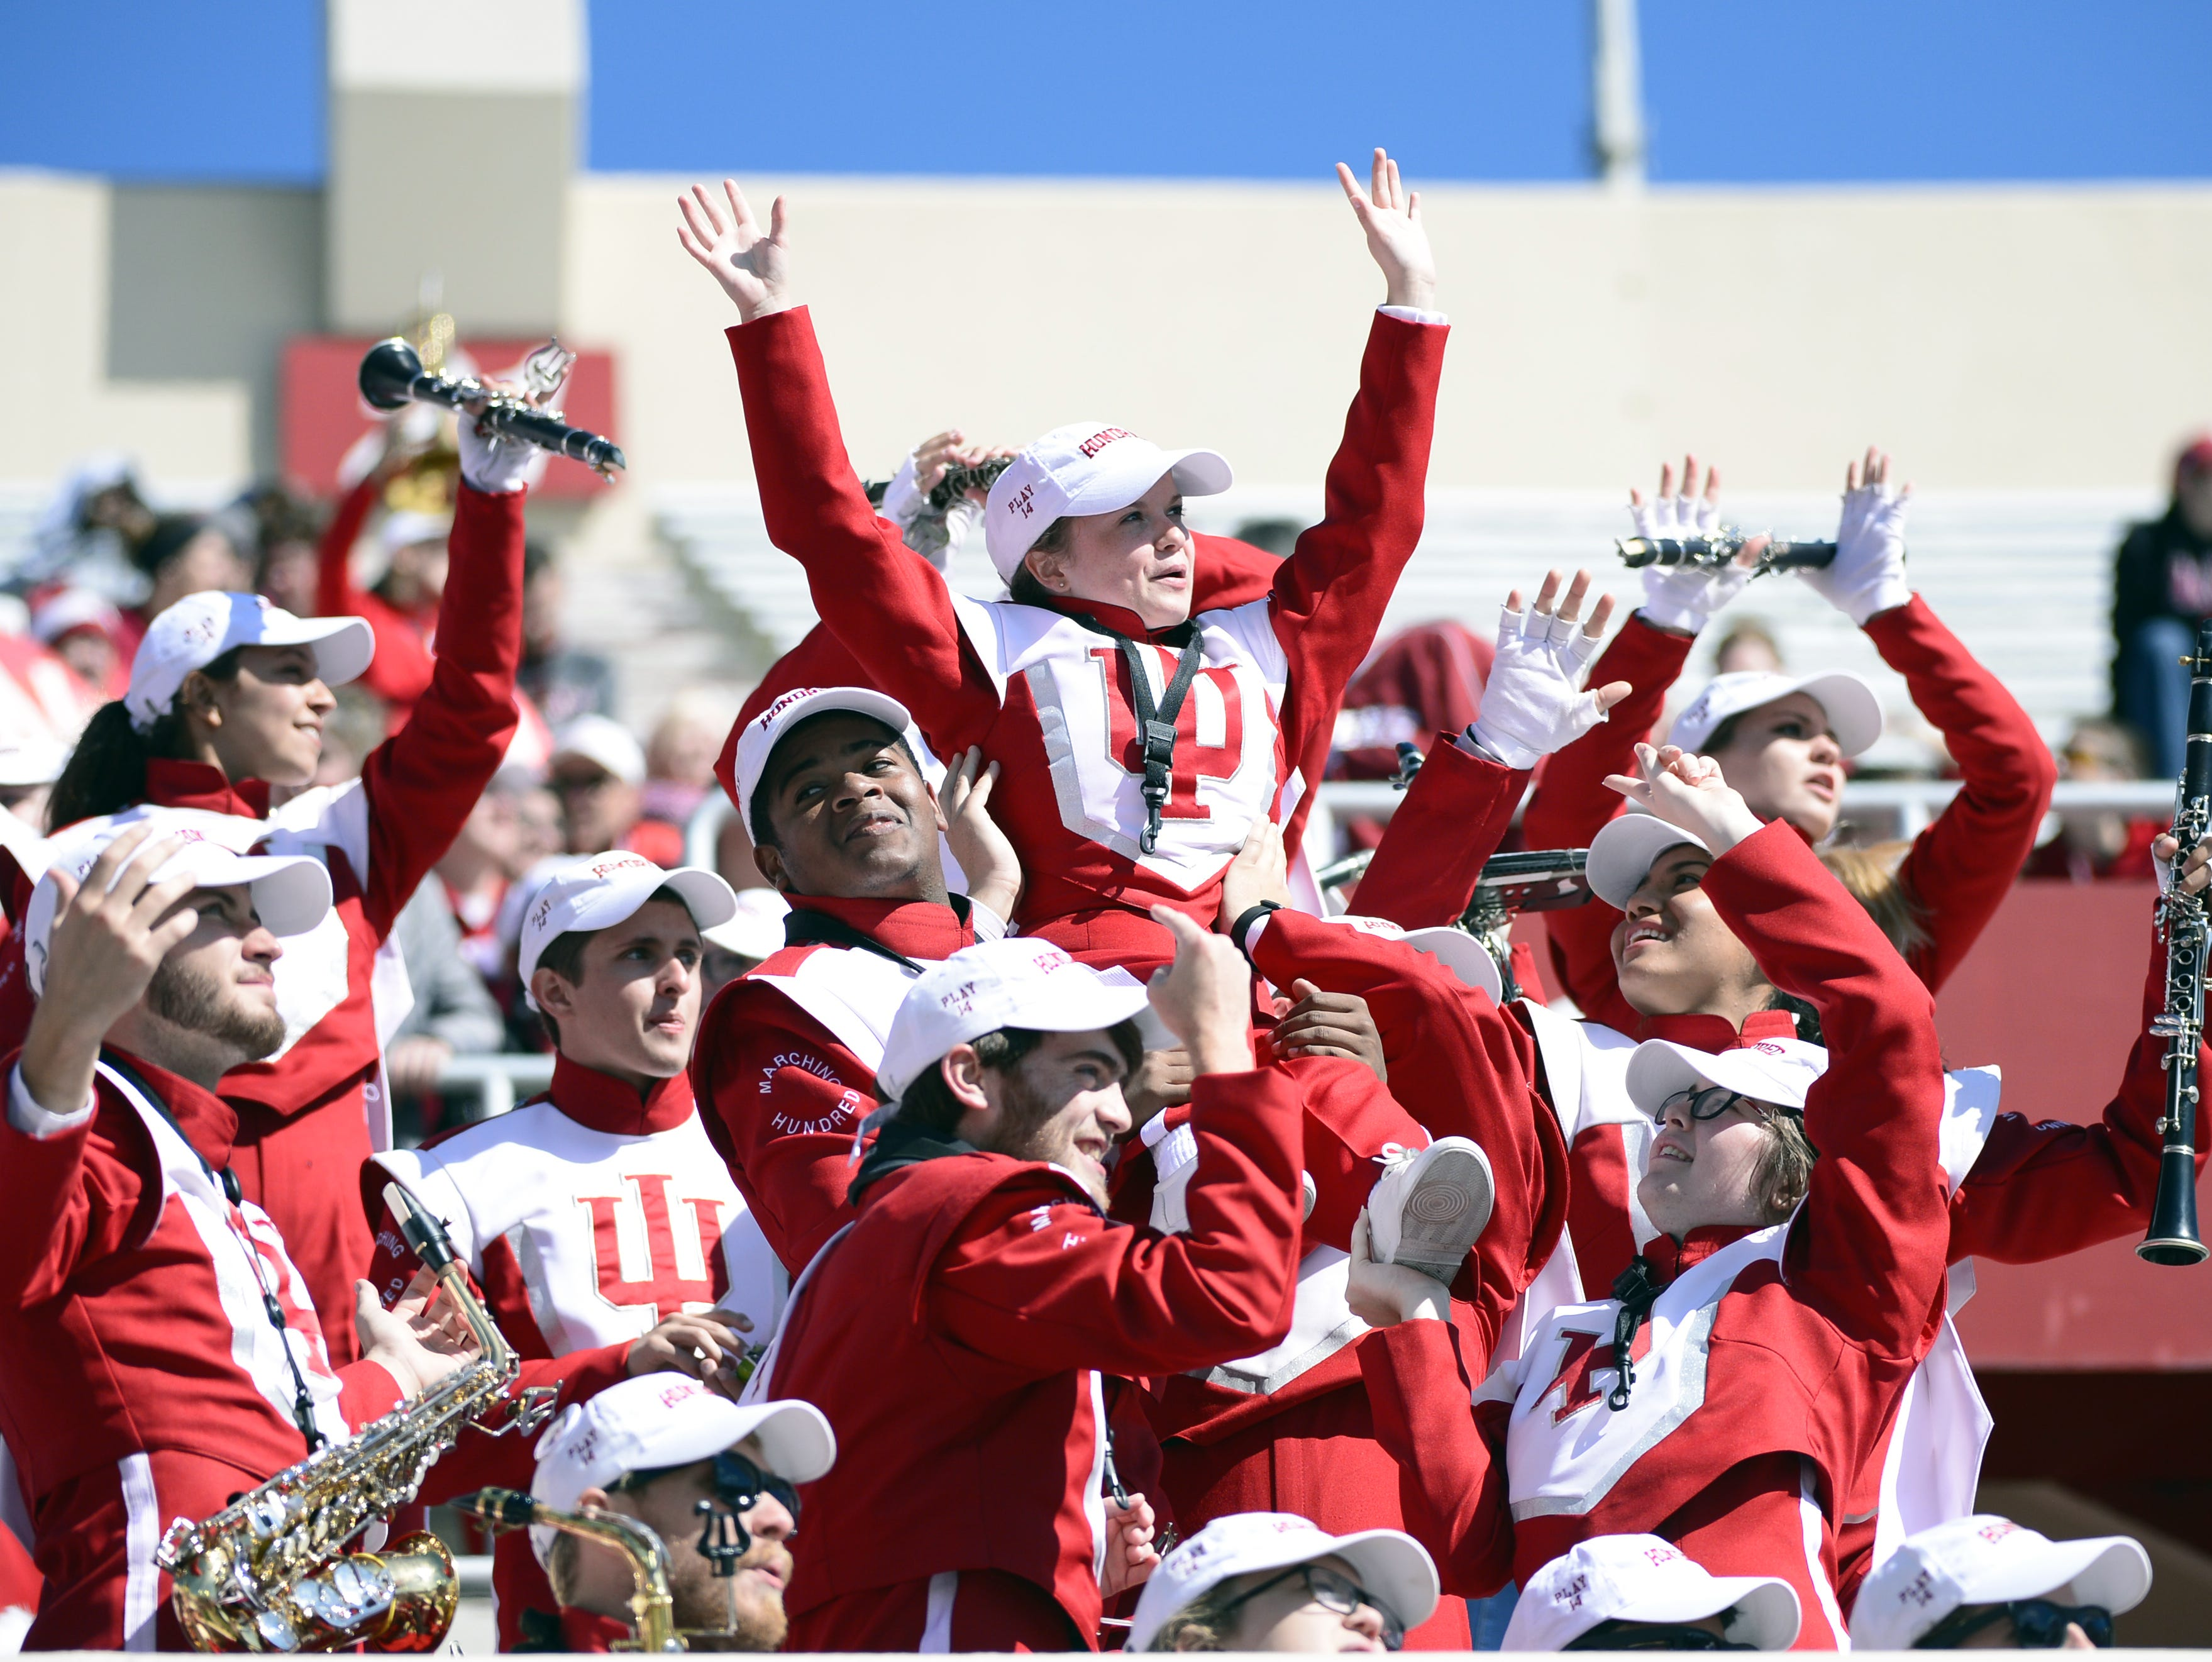 The Indiana Hoosiers marching band cheers during the game against Iowa at Memorial Stadium in Bloomington, Ind., on Saturday, Oct. 13, 2018.